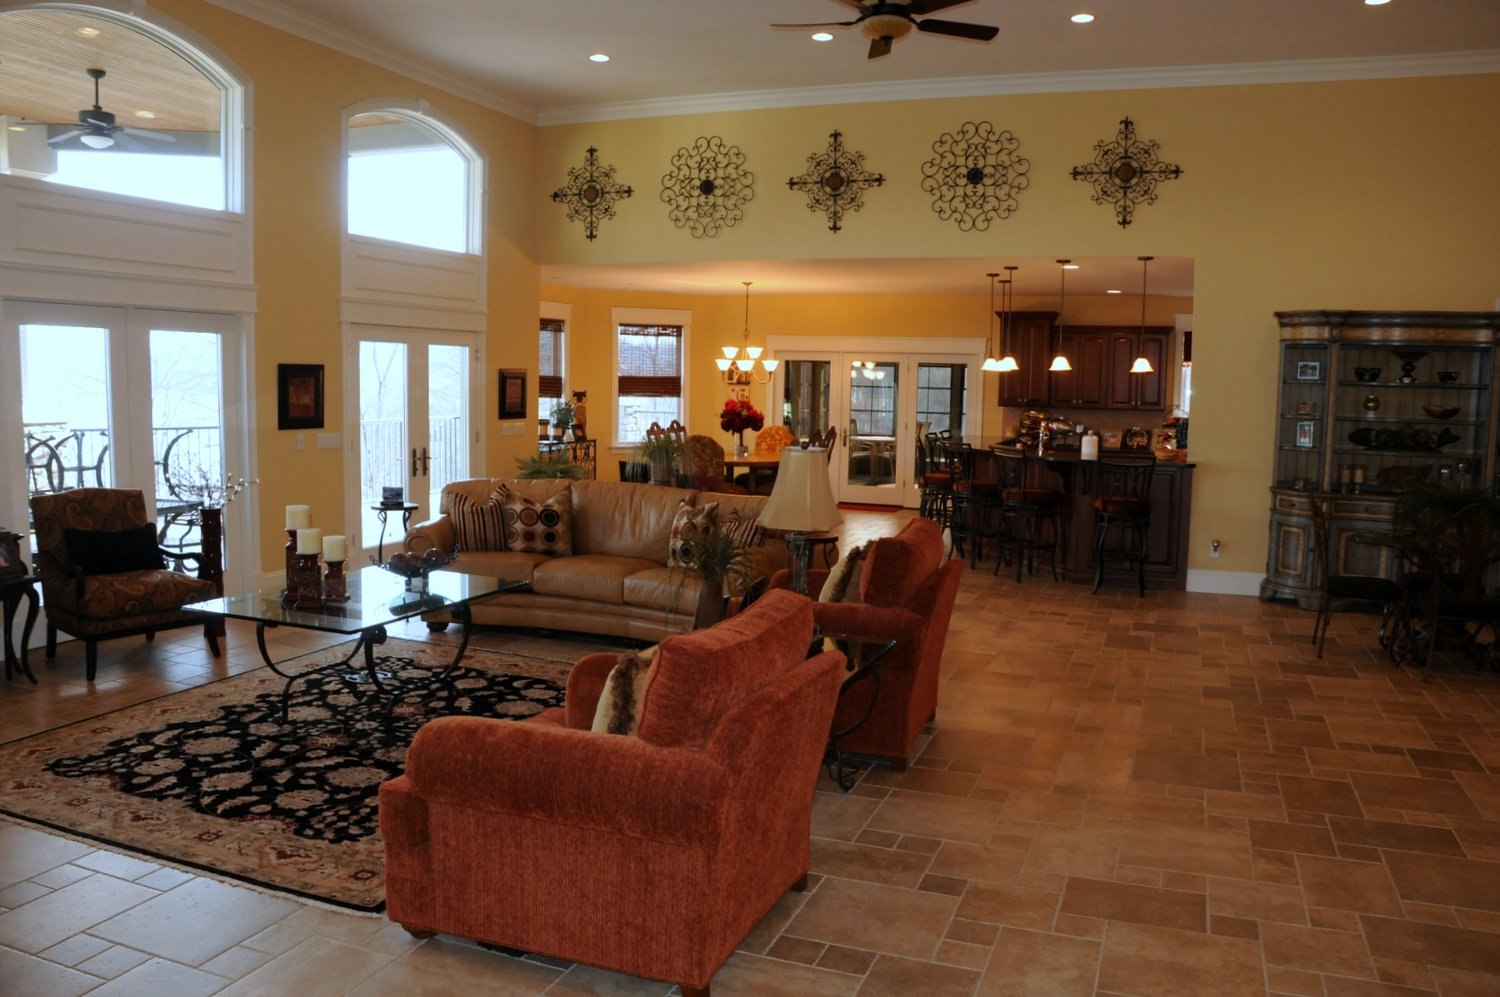 Great view to sit back and relax. Enjoy Cathedral ceilings with wide open windows